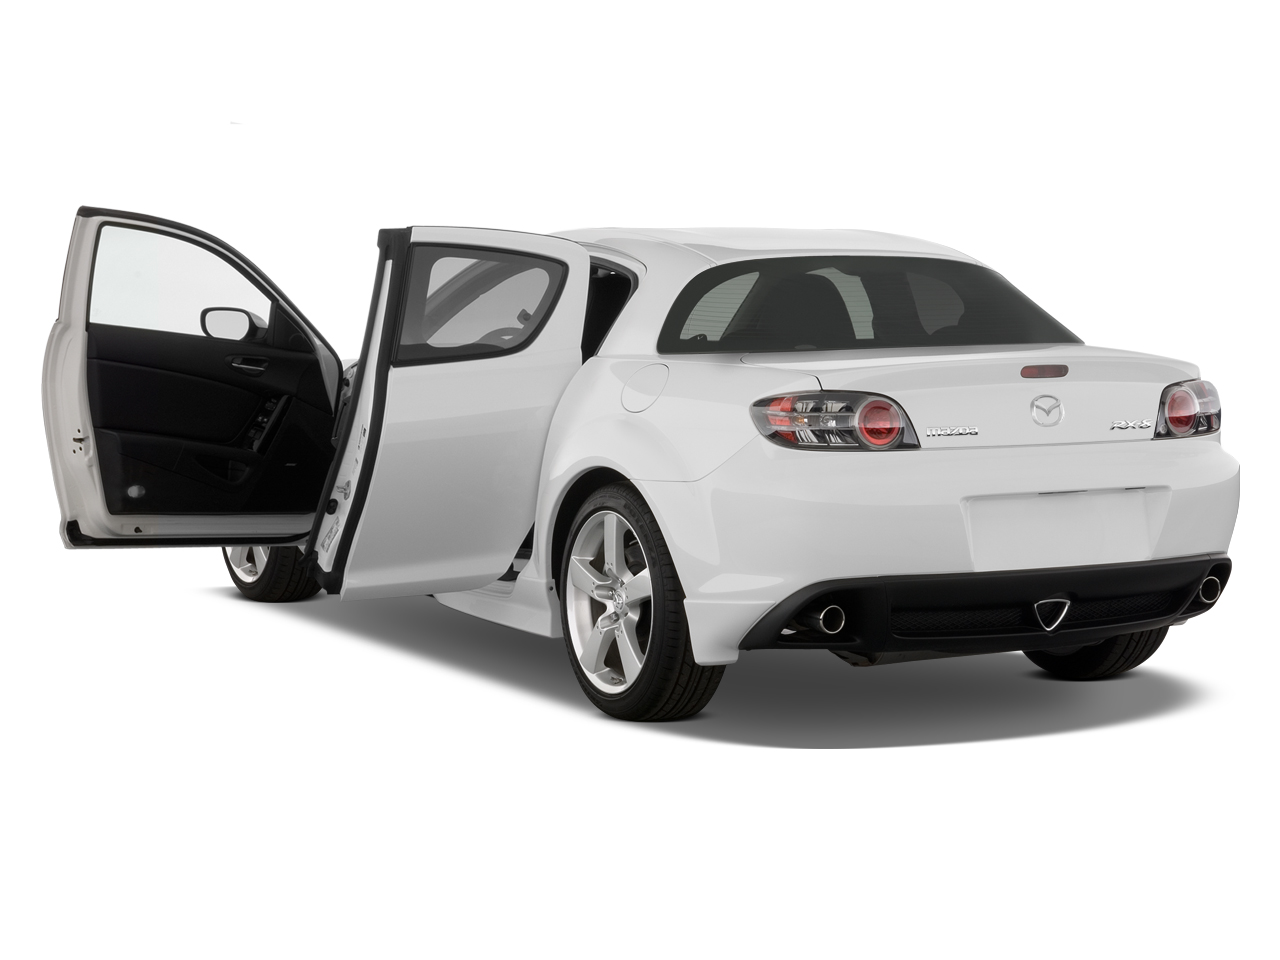 https://st.automobilemag.com/uploads/sites/10/2015/11/2008-mazda-rx8-grand-touring-coupe-doors.png